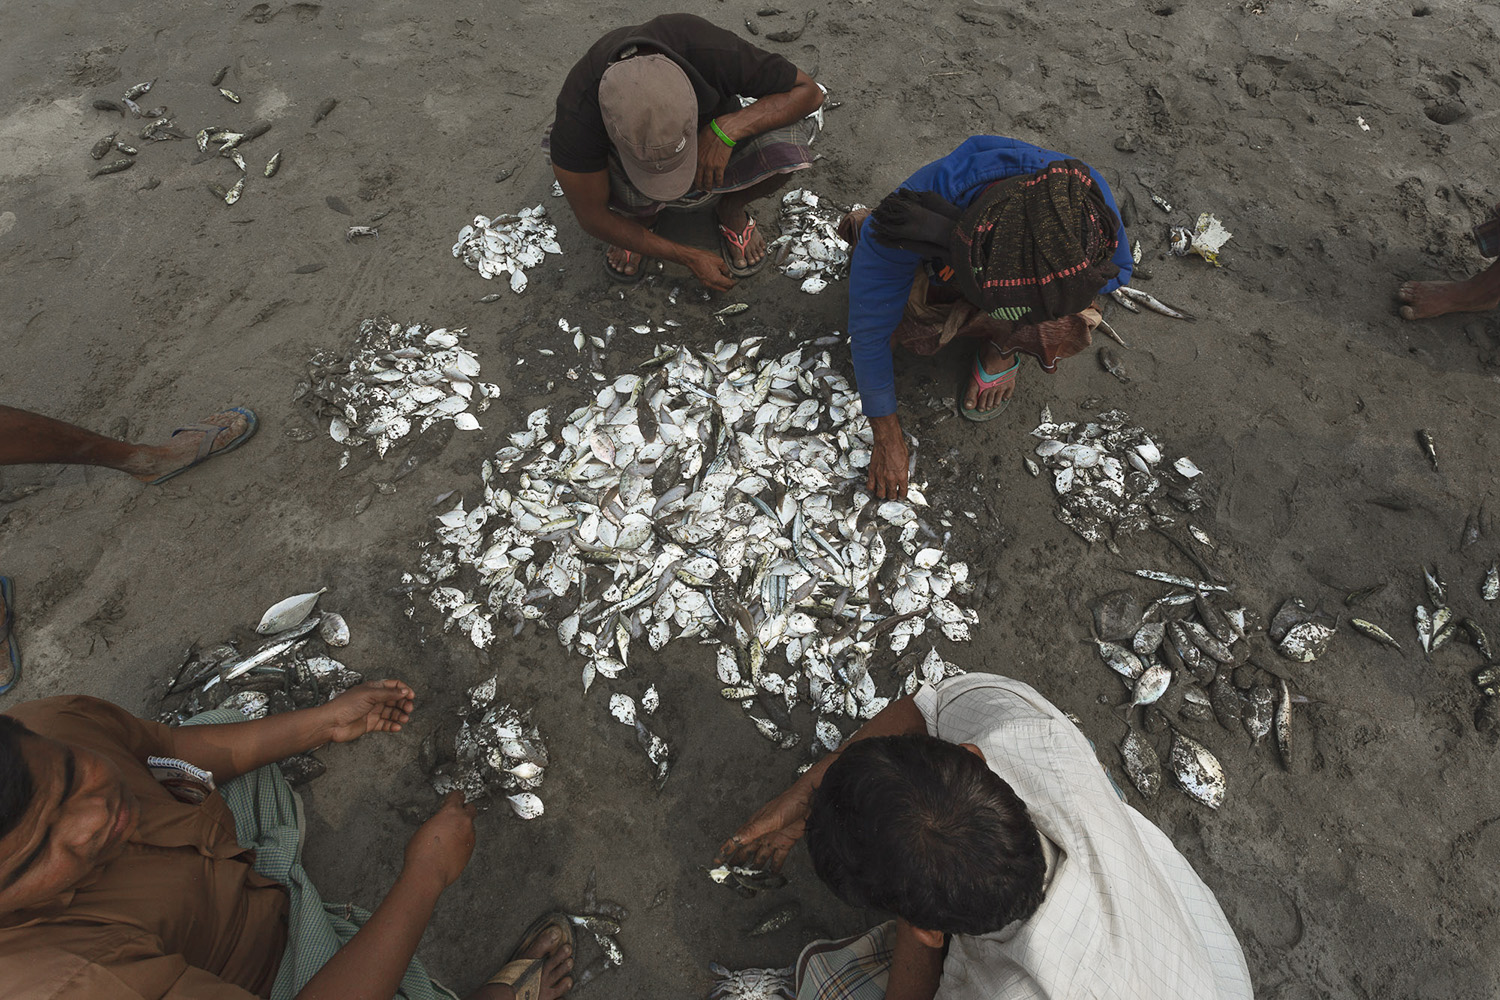 Sorting out the caught fish at Bay of Bengal Cox's Bazar Bangladesh fish